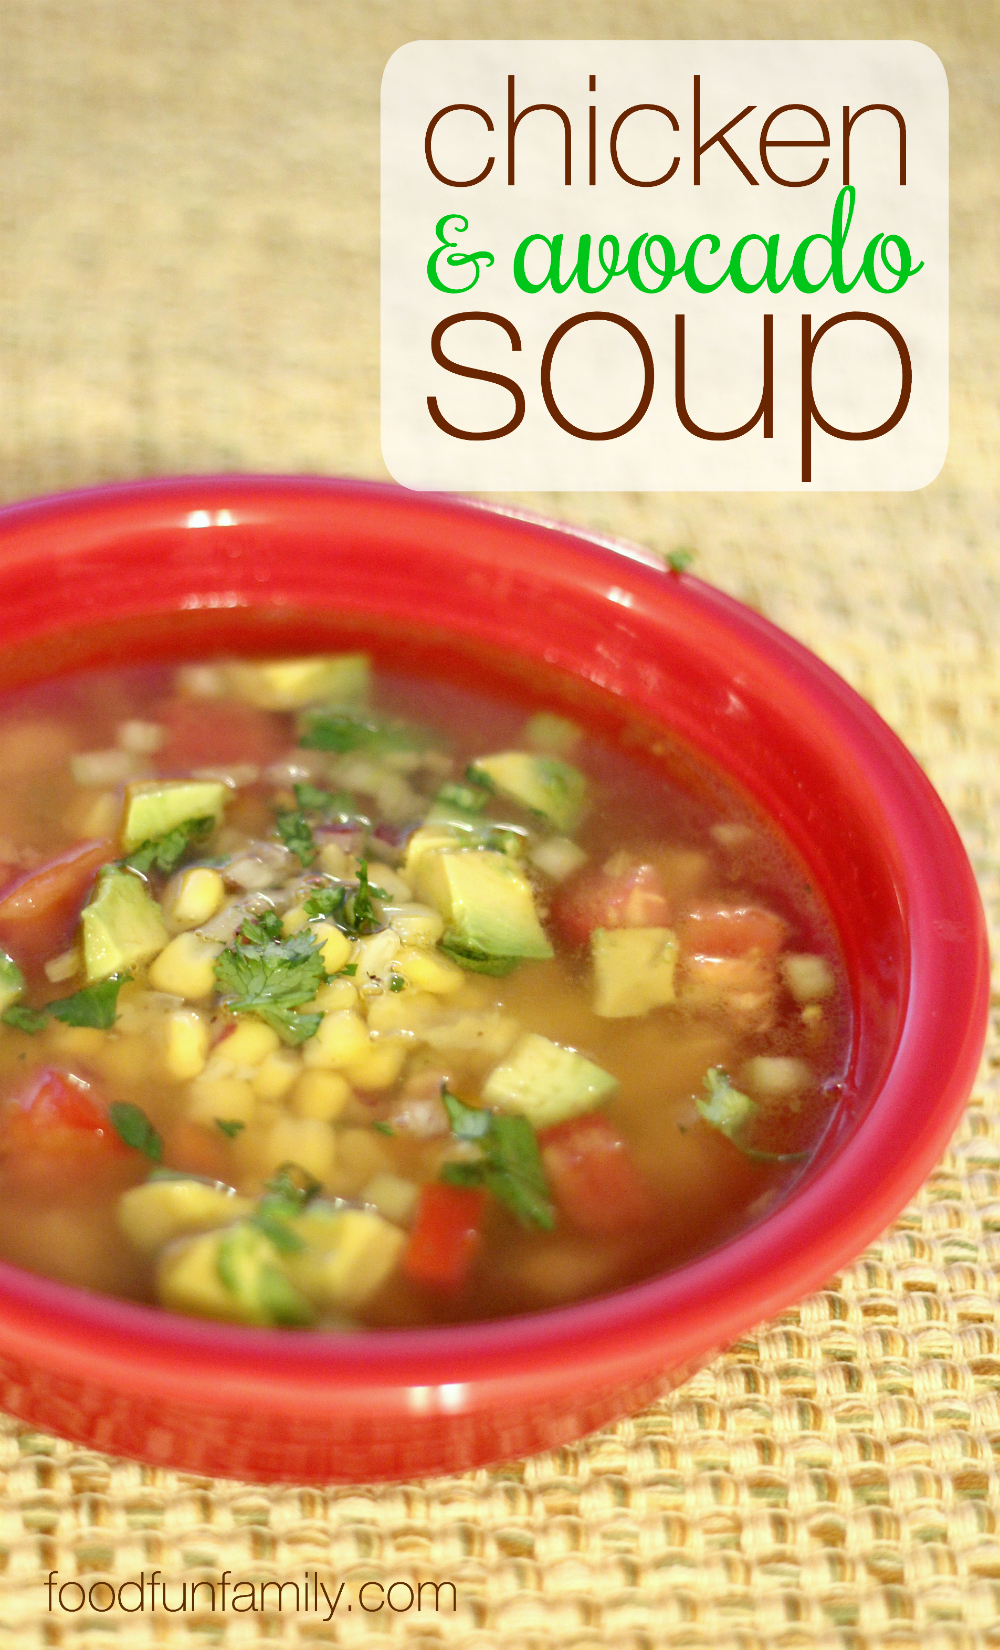 ... bowl of this chicken and avocado soup. Full of fresh, vibrant flavors